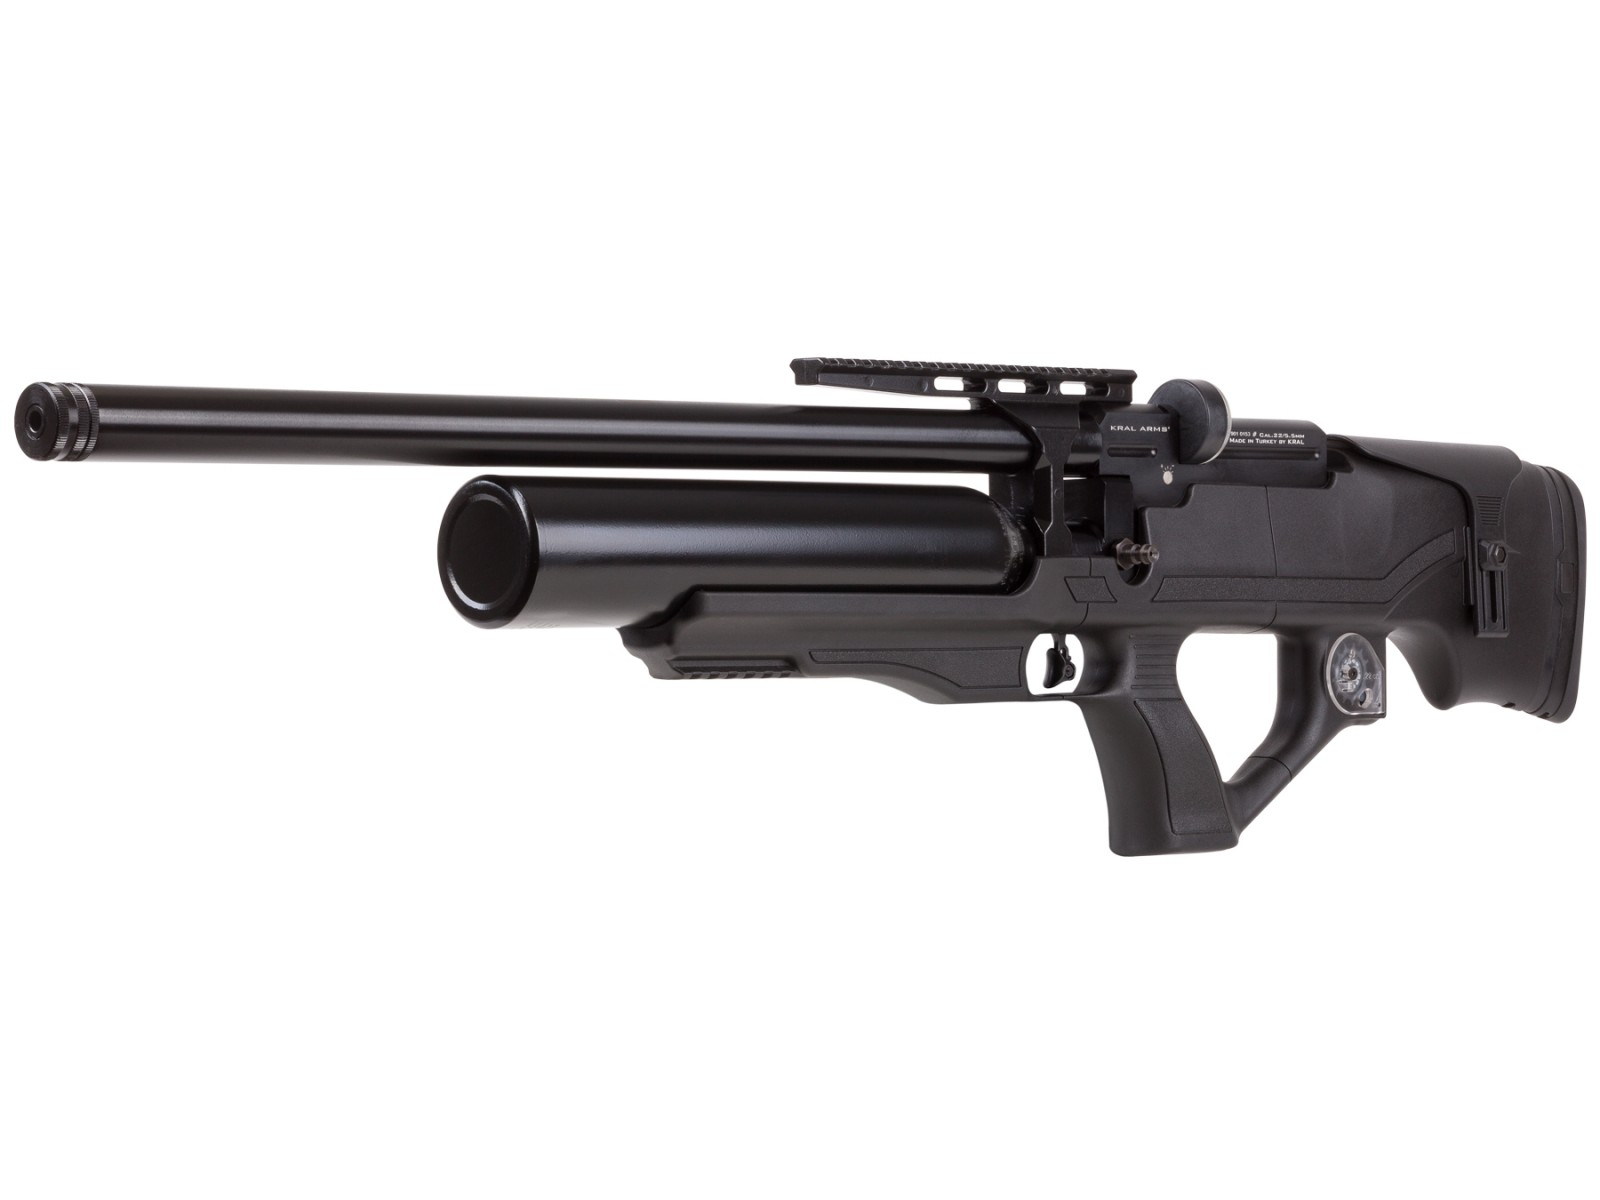 Kral Puncher Knight S PCP Air Rifle, Synthetic Stock 0.22 Image